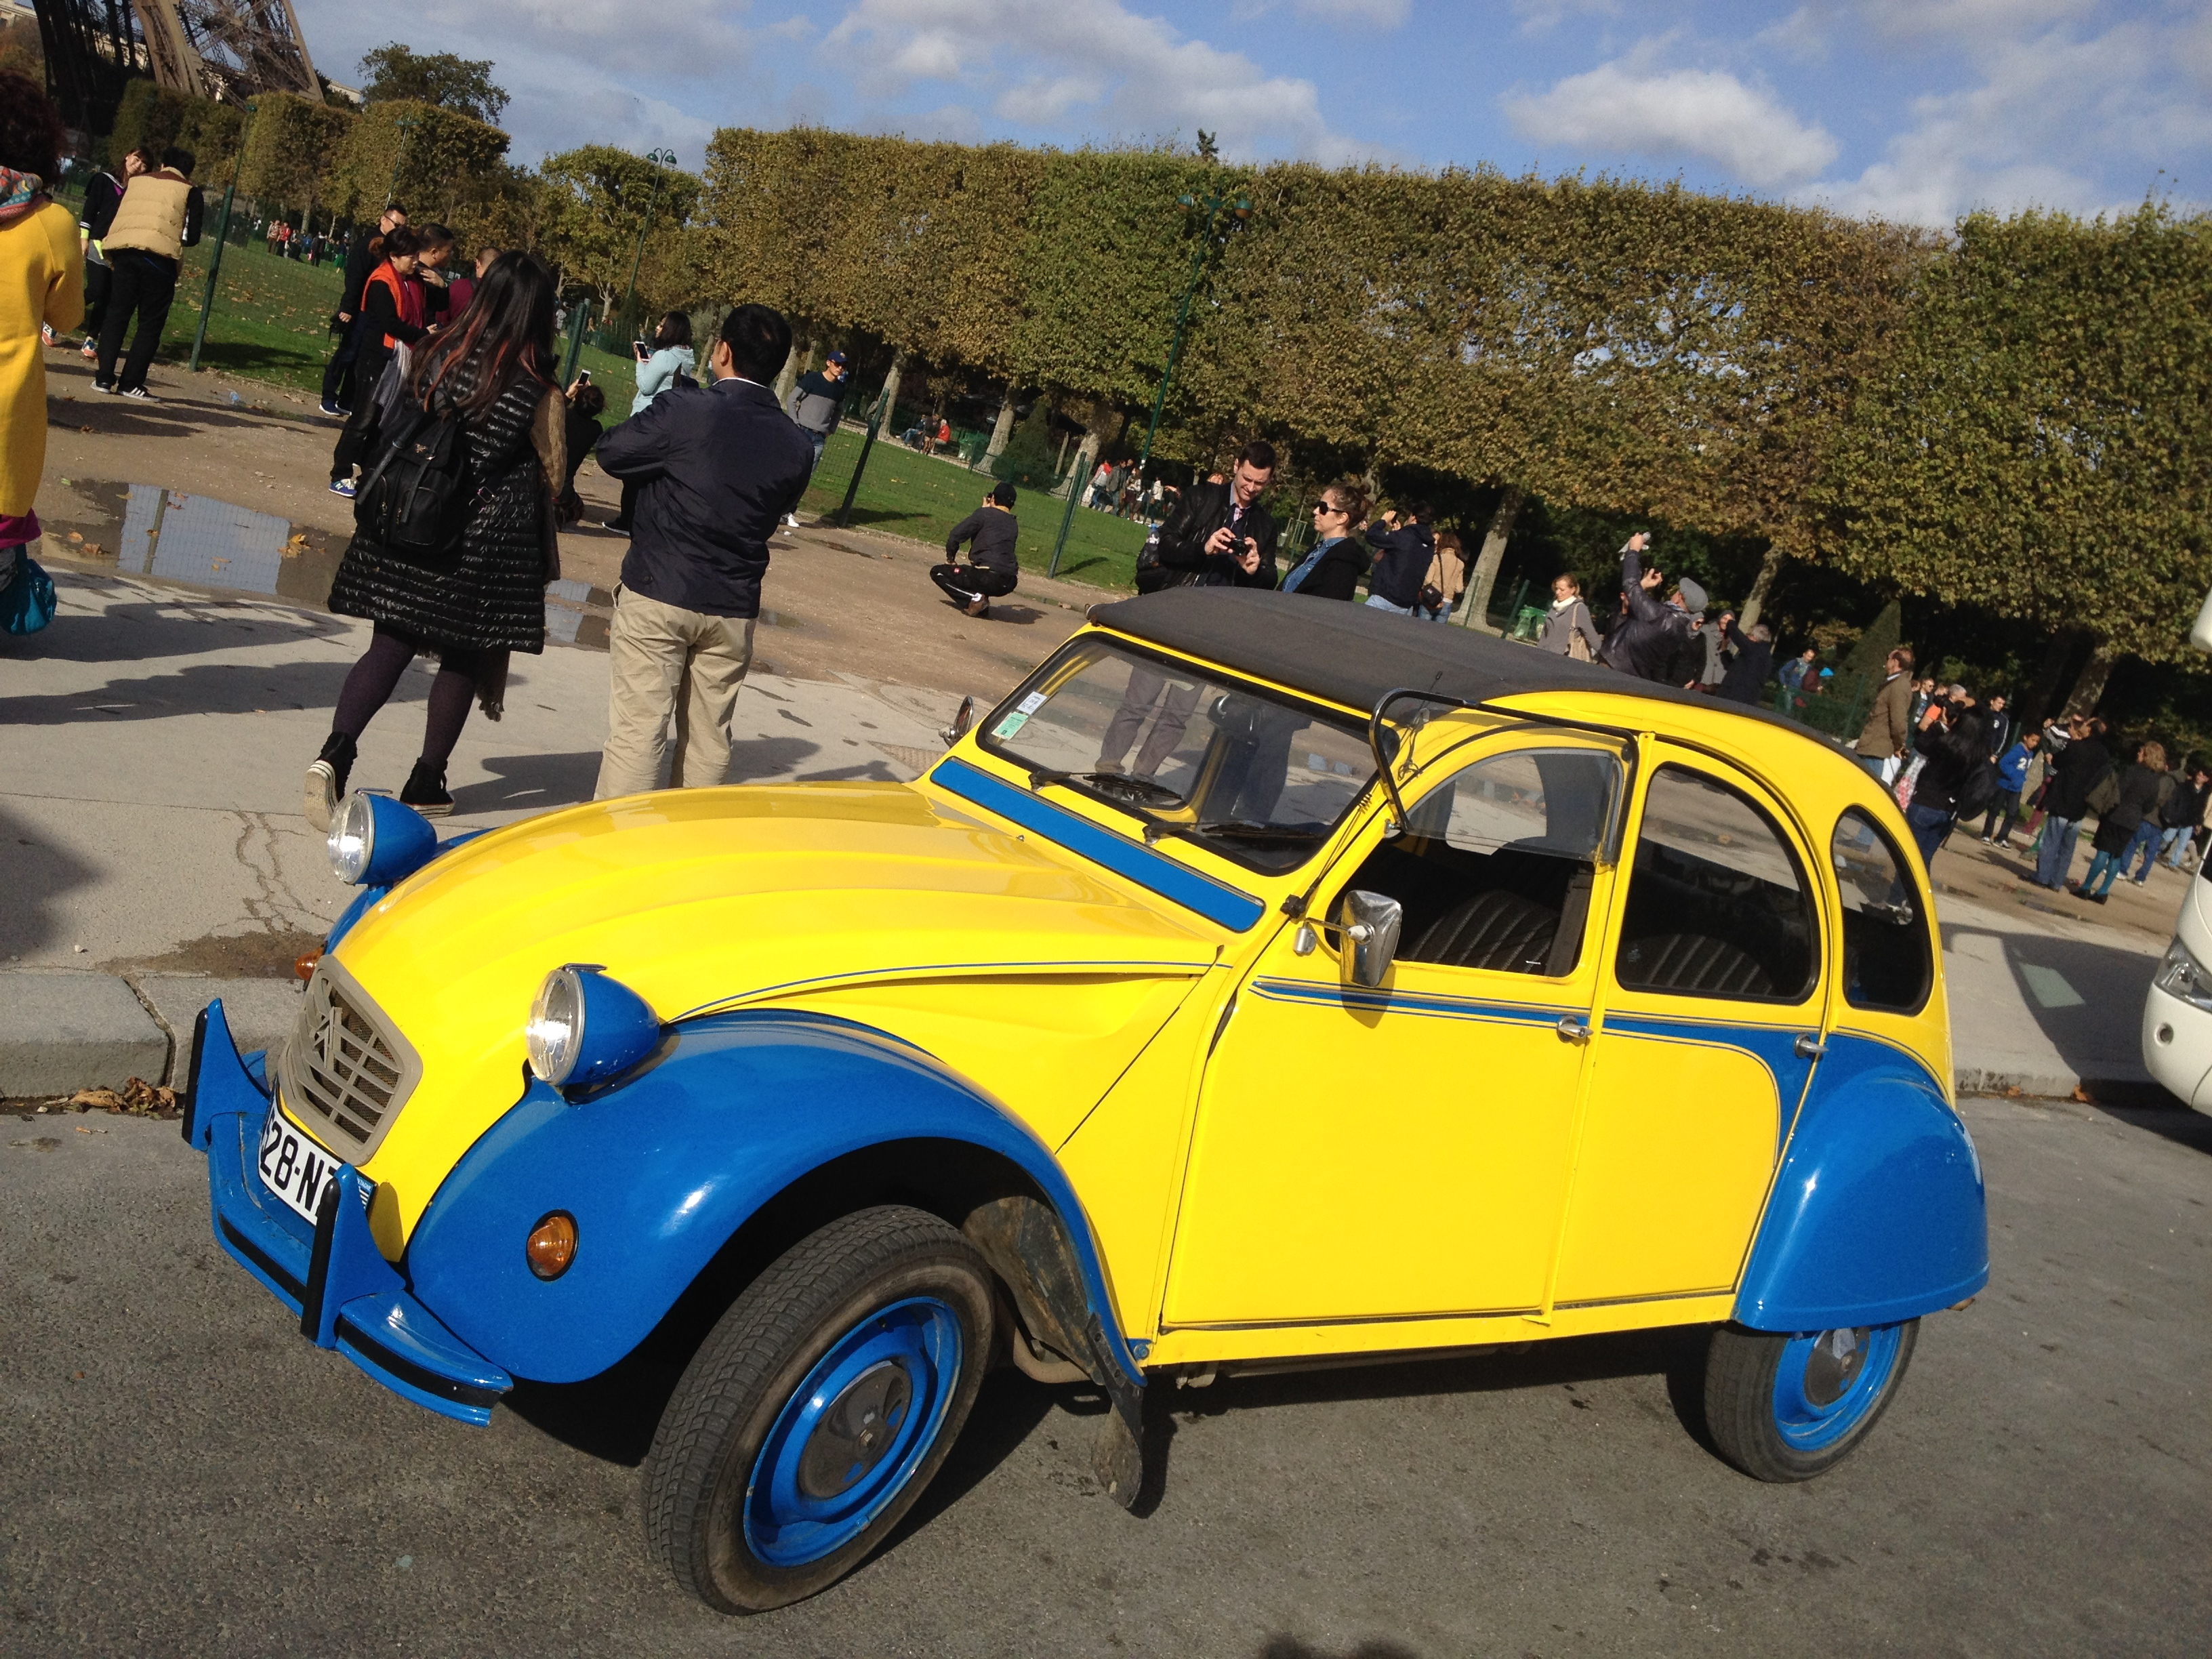 2CVParisTour : 2CV Sightseeing tours by 2CV! Our 2CV Eglantine!